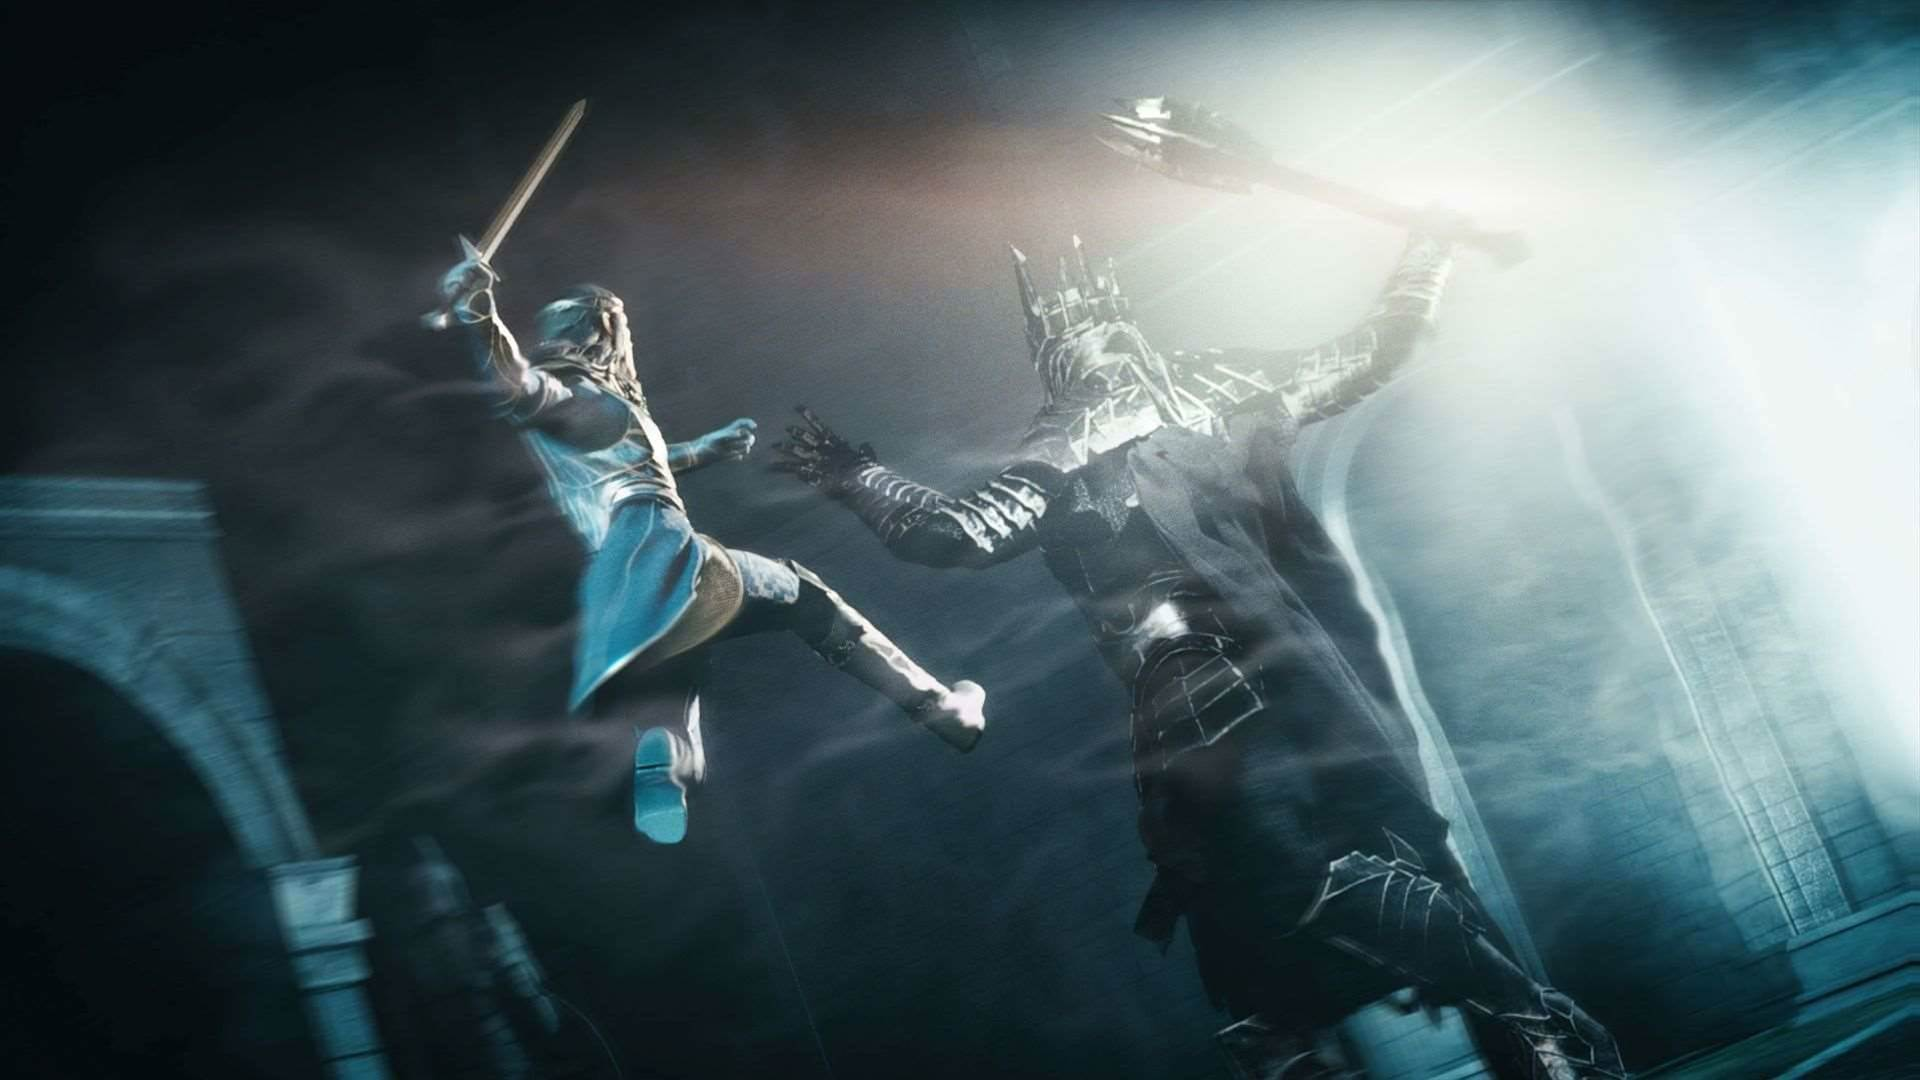 New Bright Lord DLC out now for Shadow of Mordor